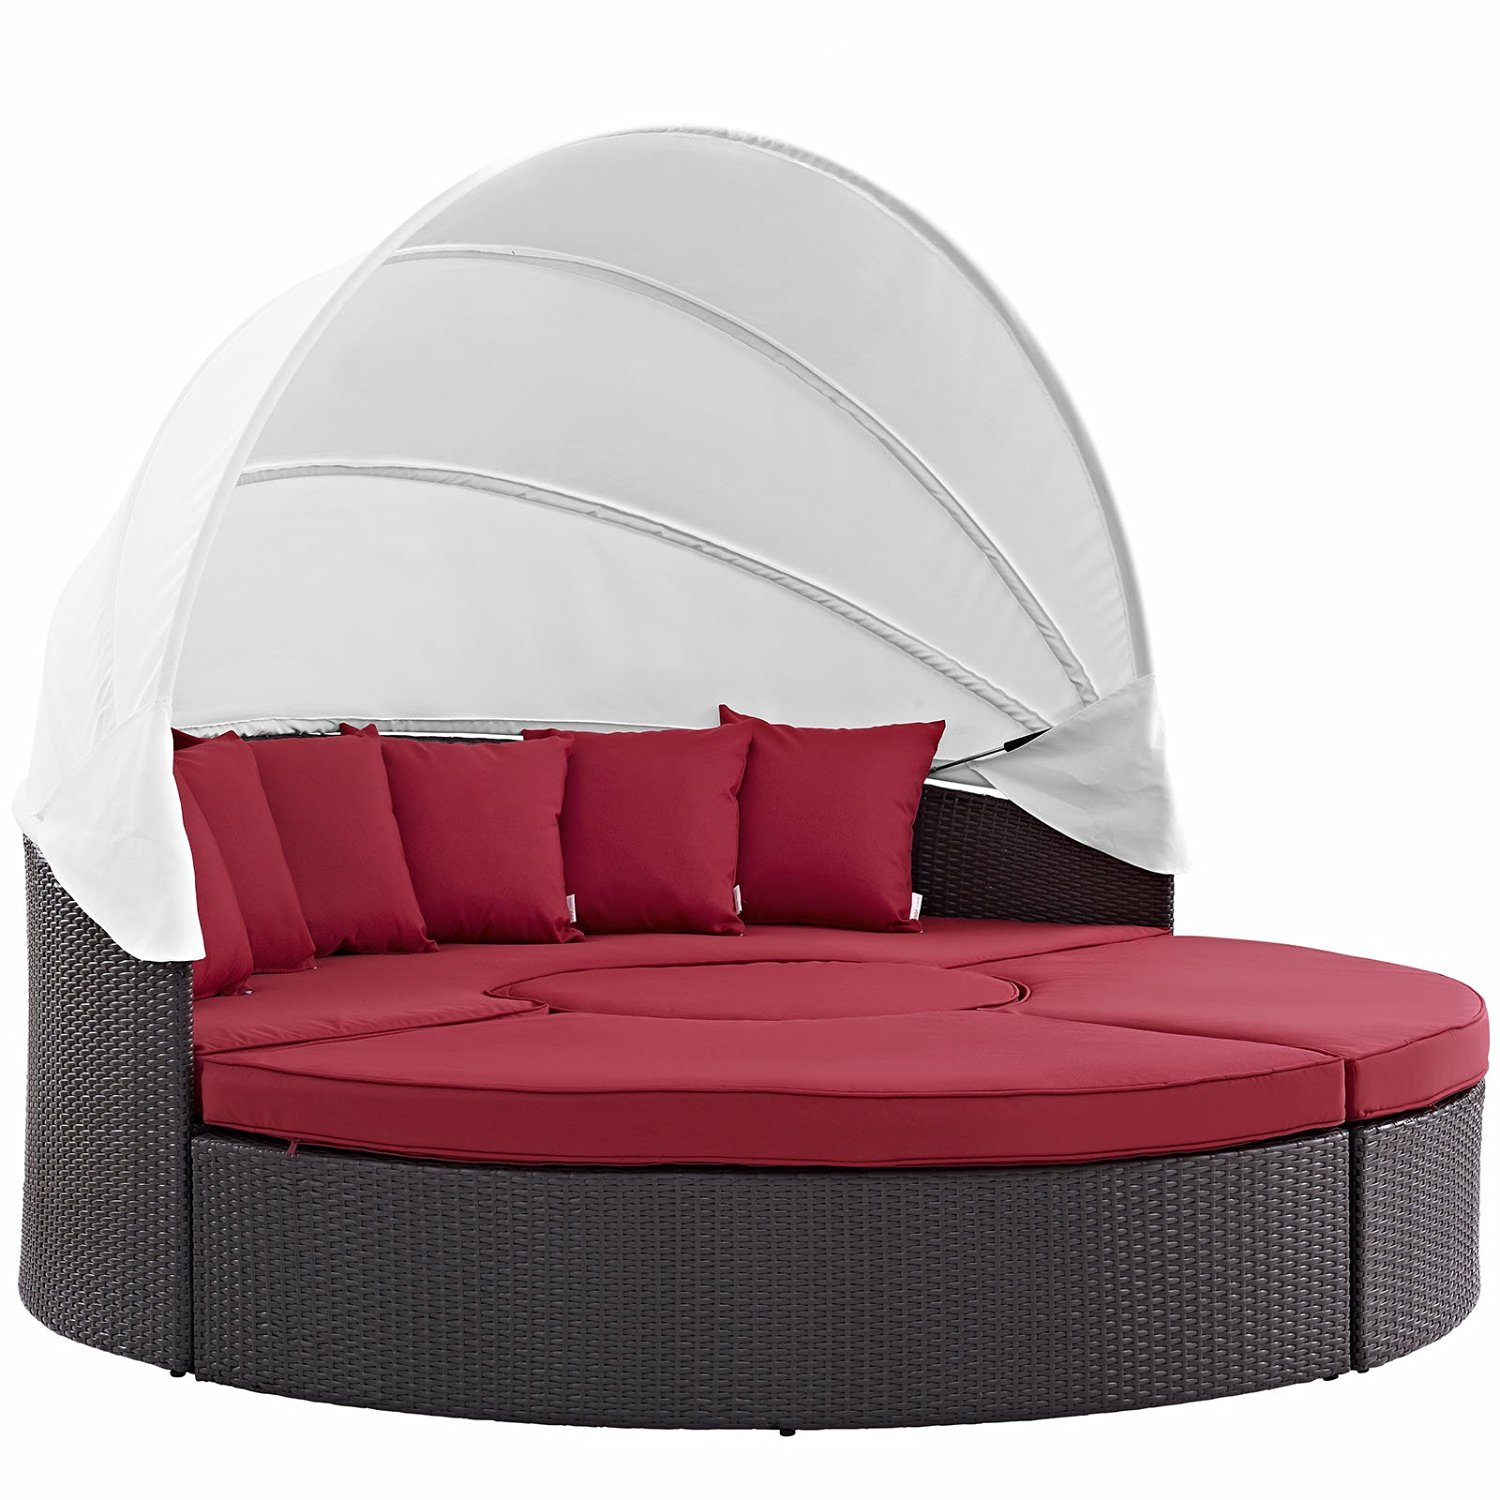 Cheap Outdoor Daybed find Outdoor Daybed deals on line at Alibaba